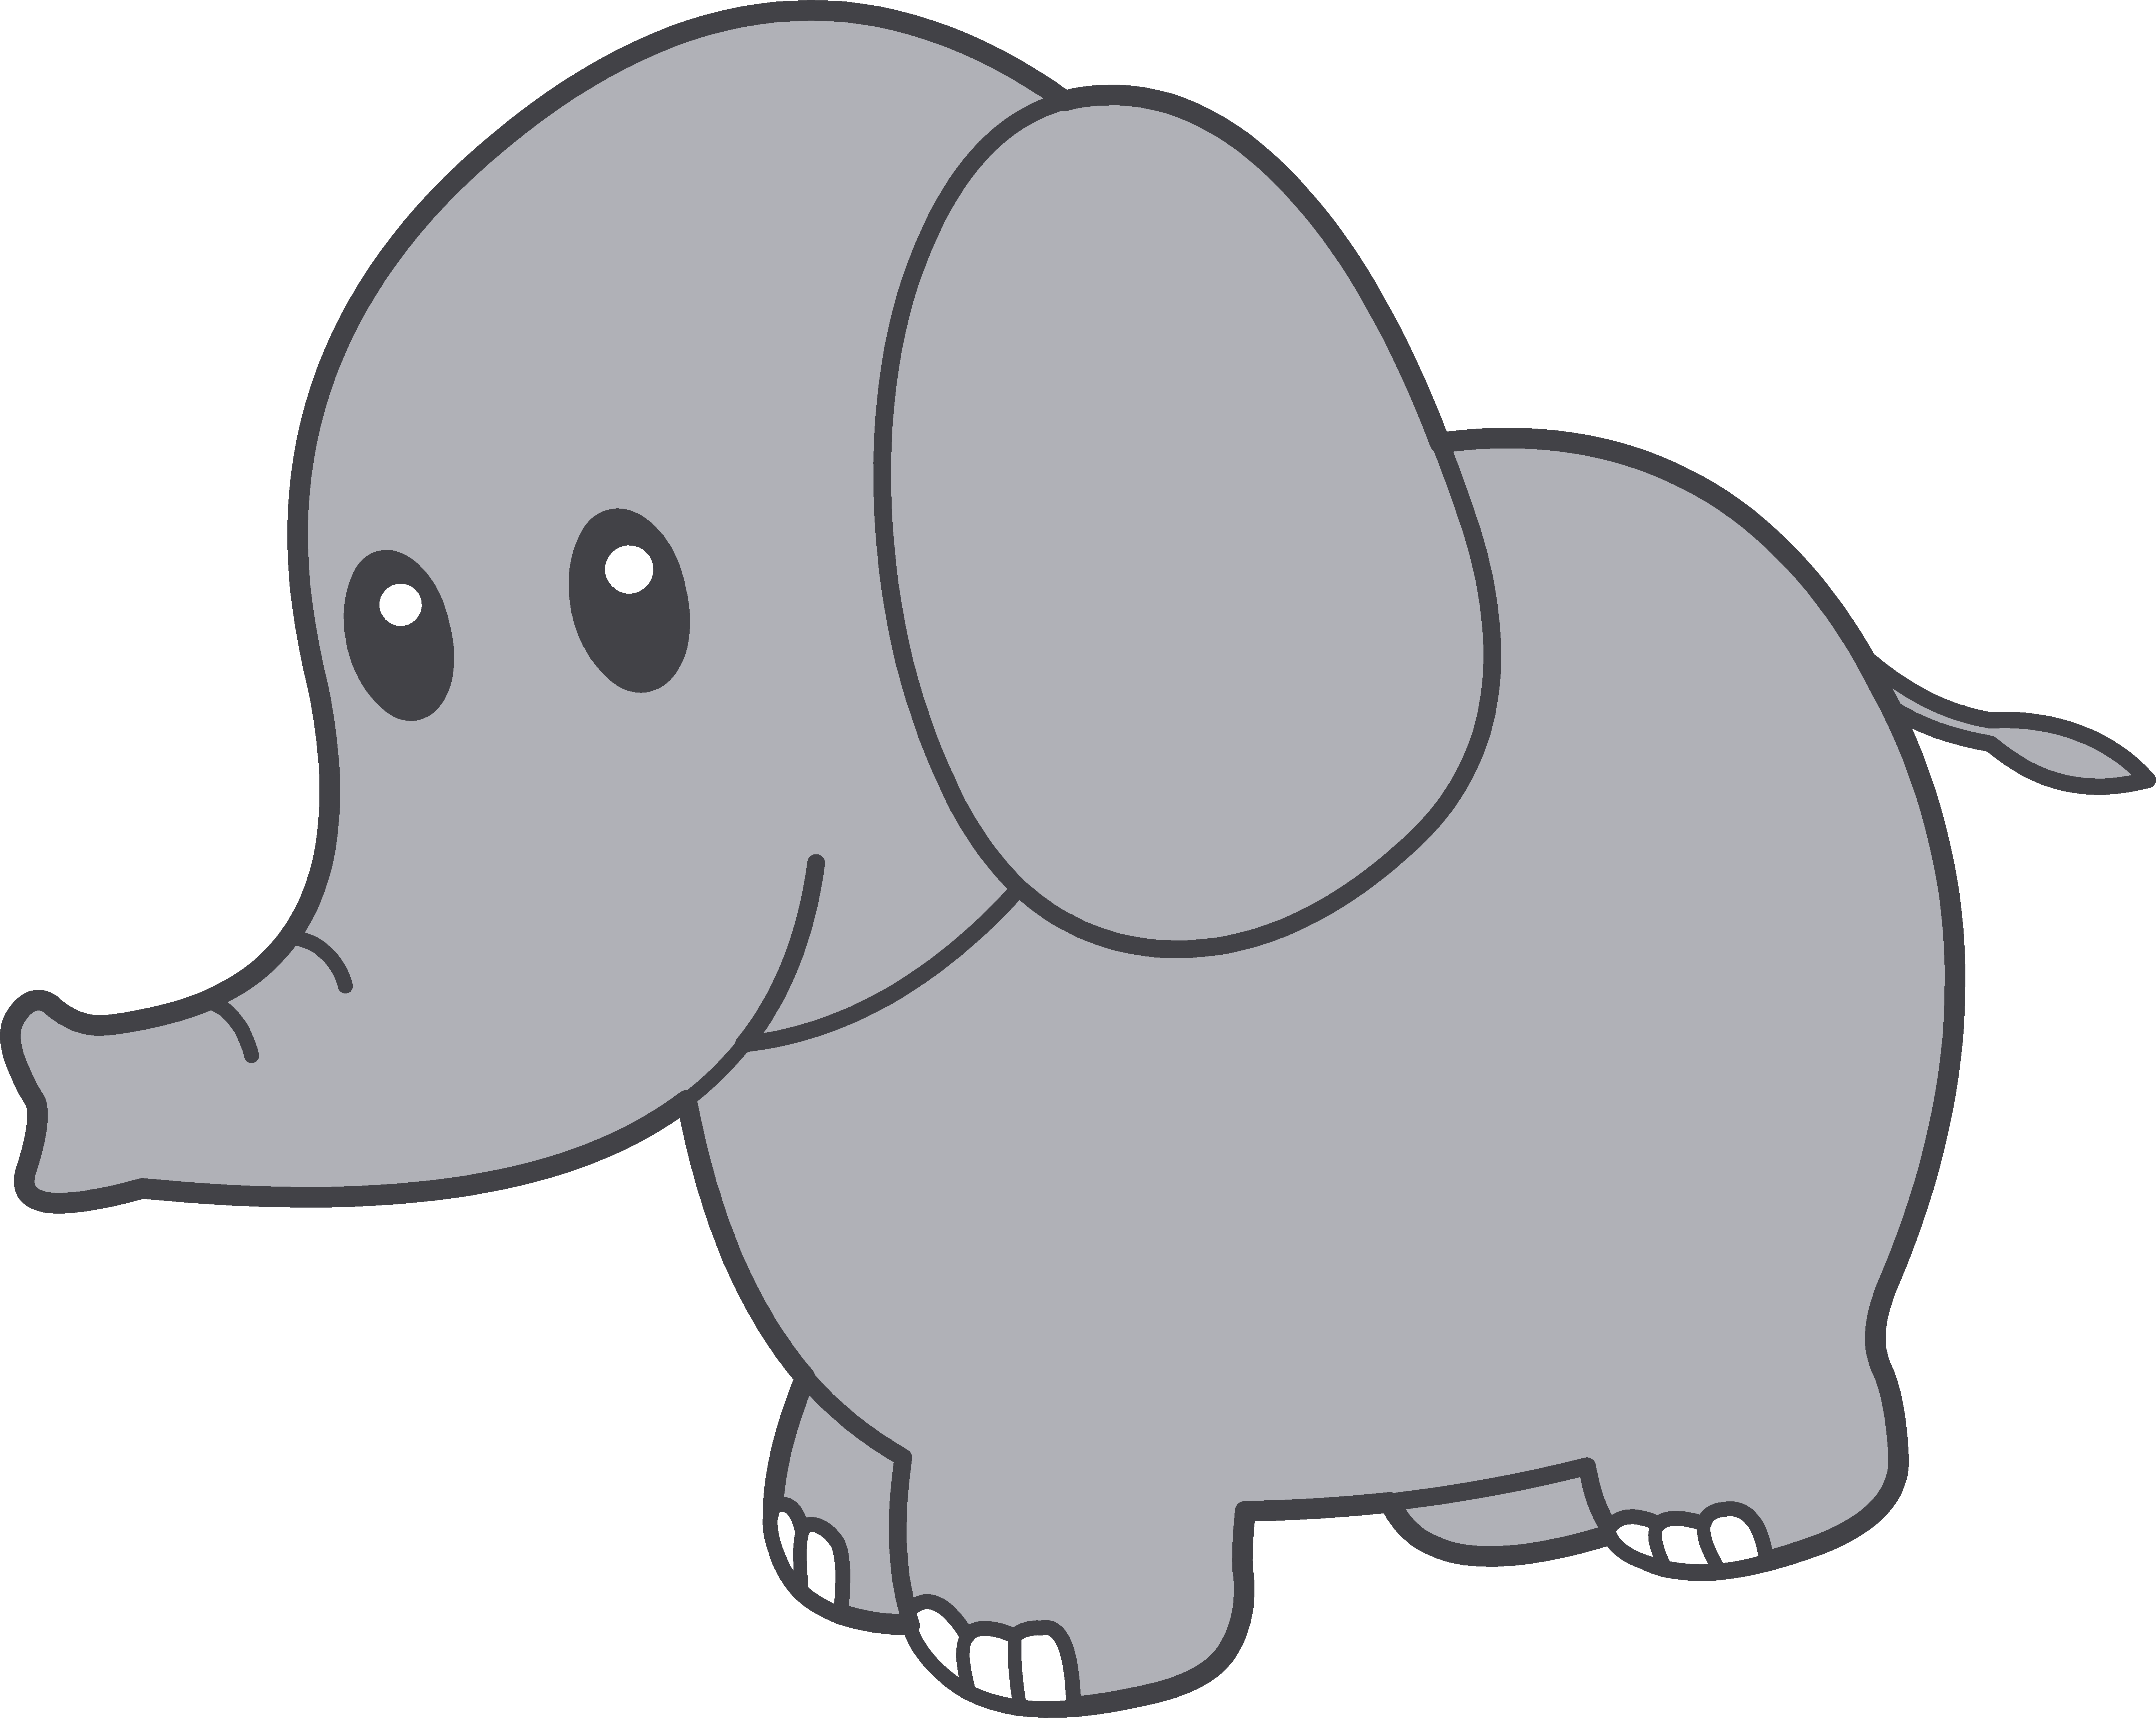 6062x4830 Drawing Elephants Cute Transparent Png Clipart Free Download